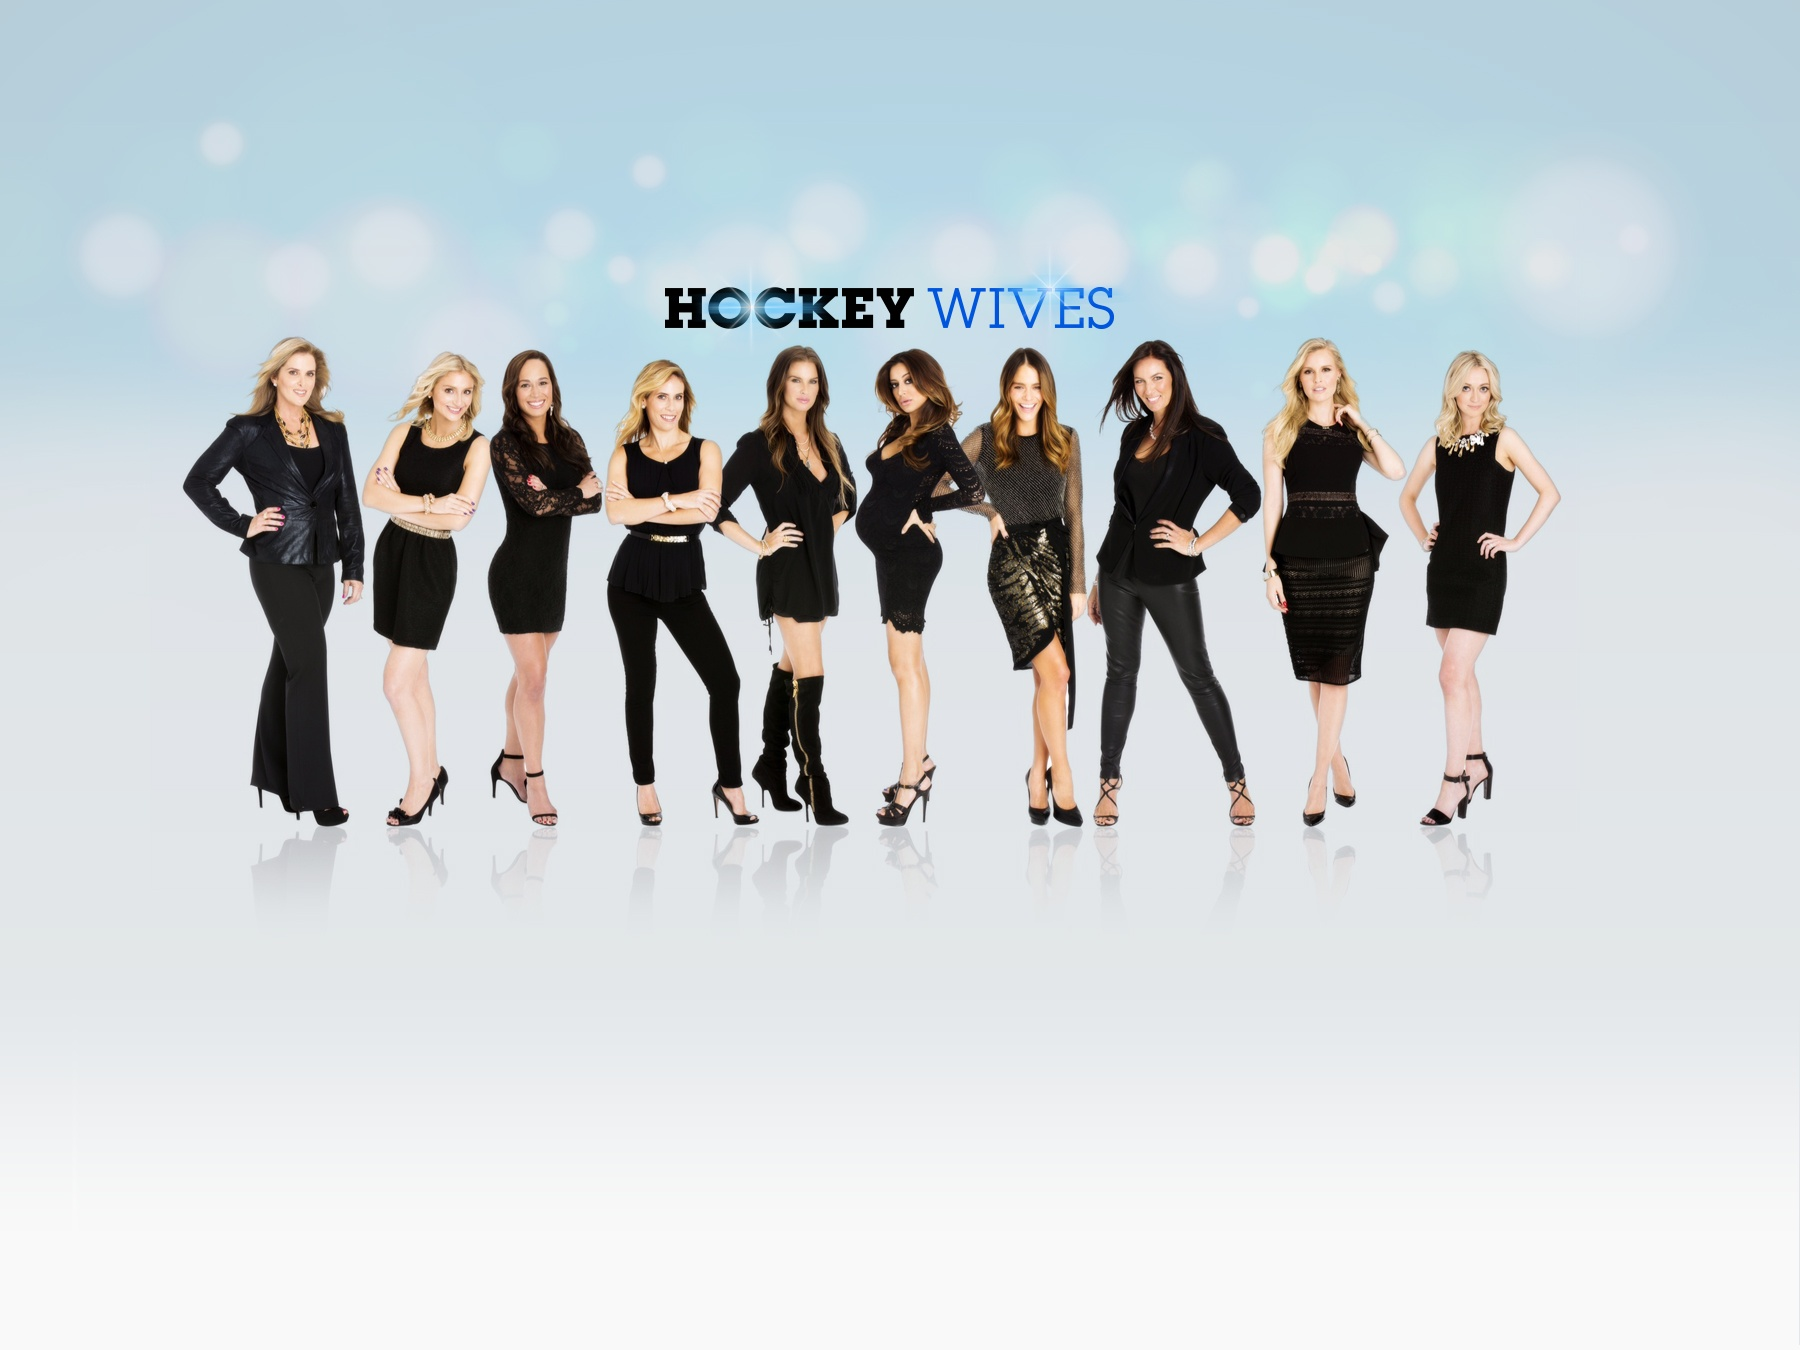 Hockey Wives on W Network